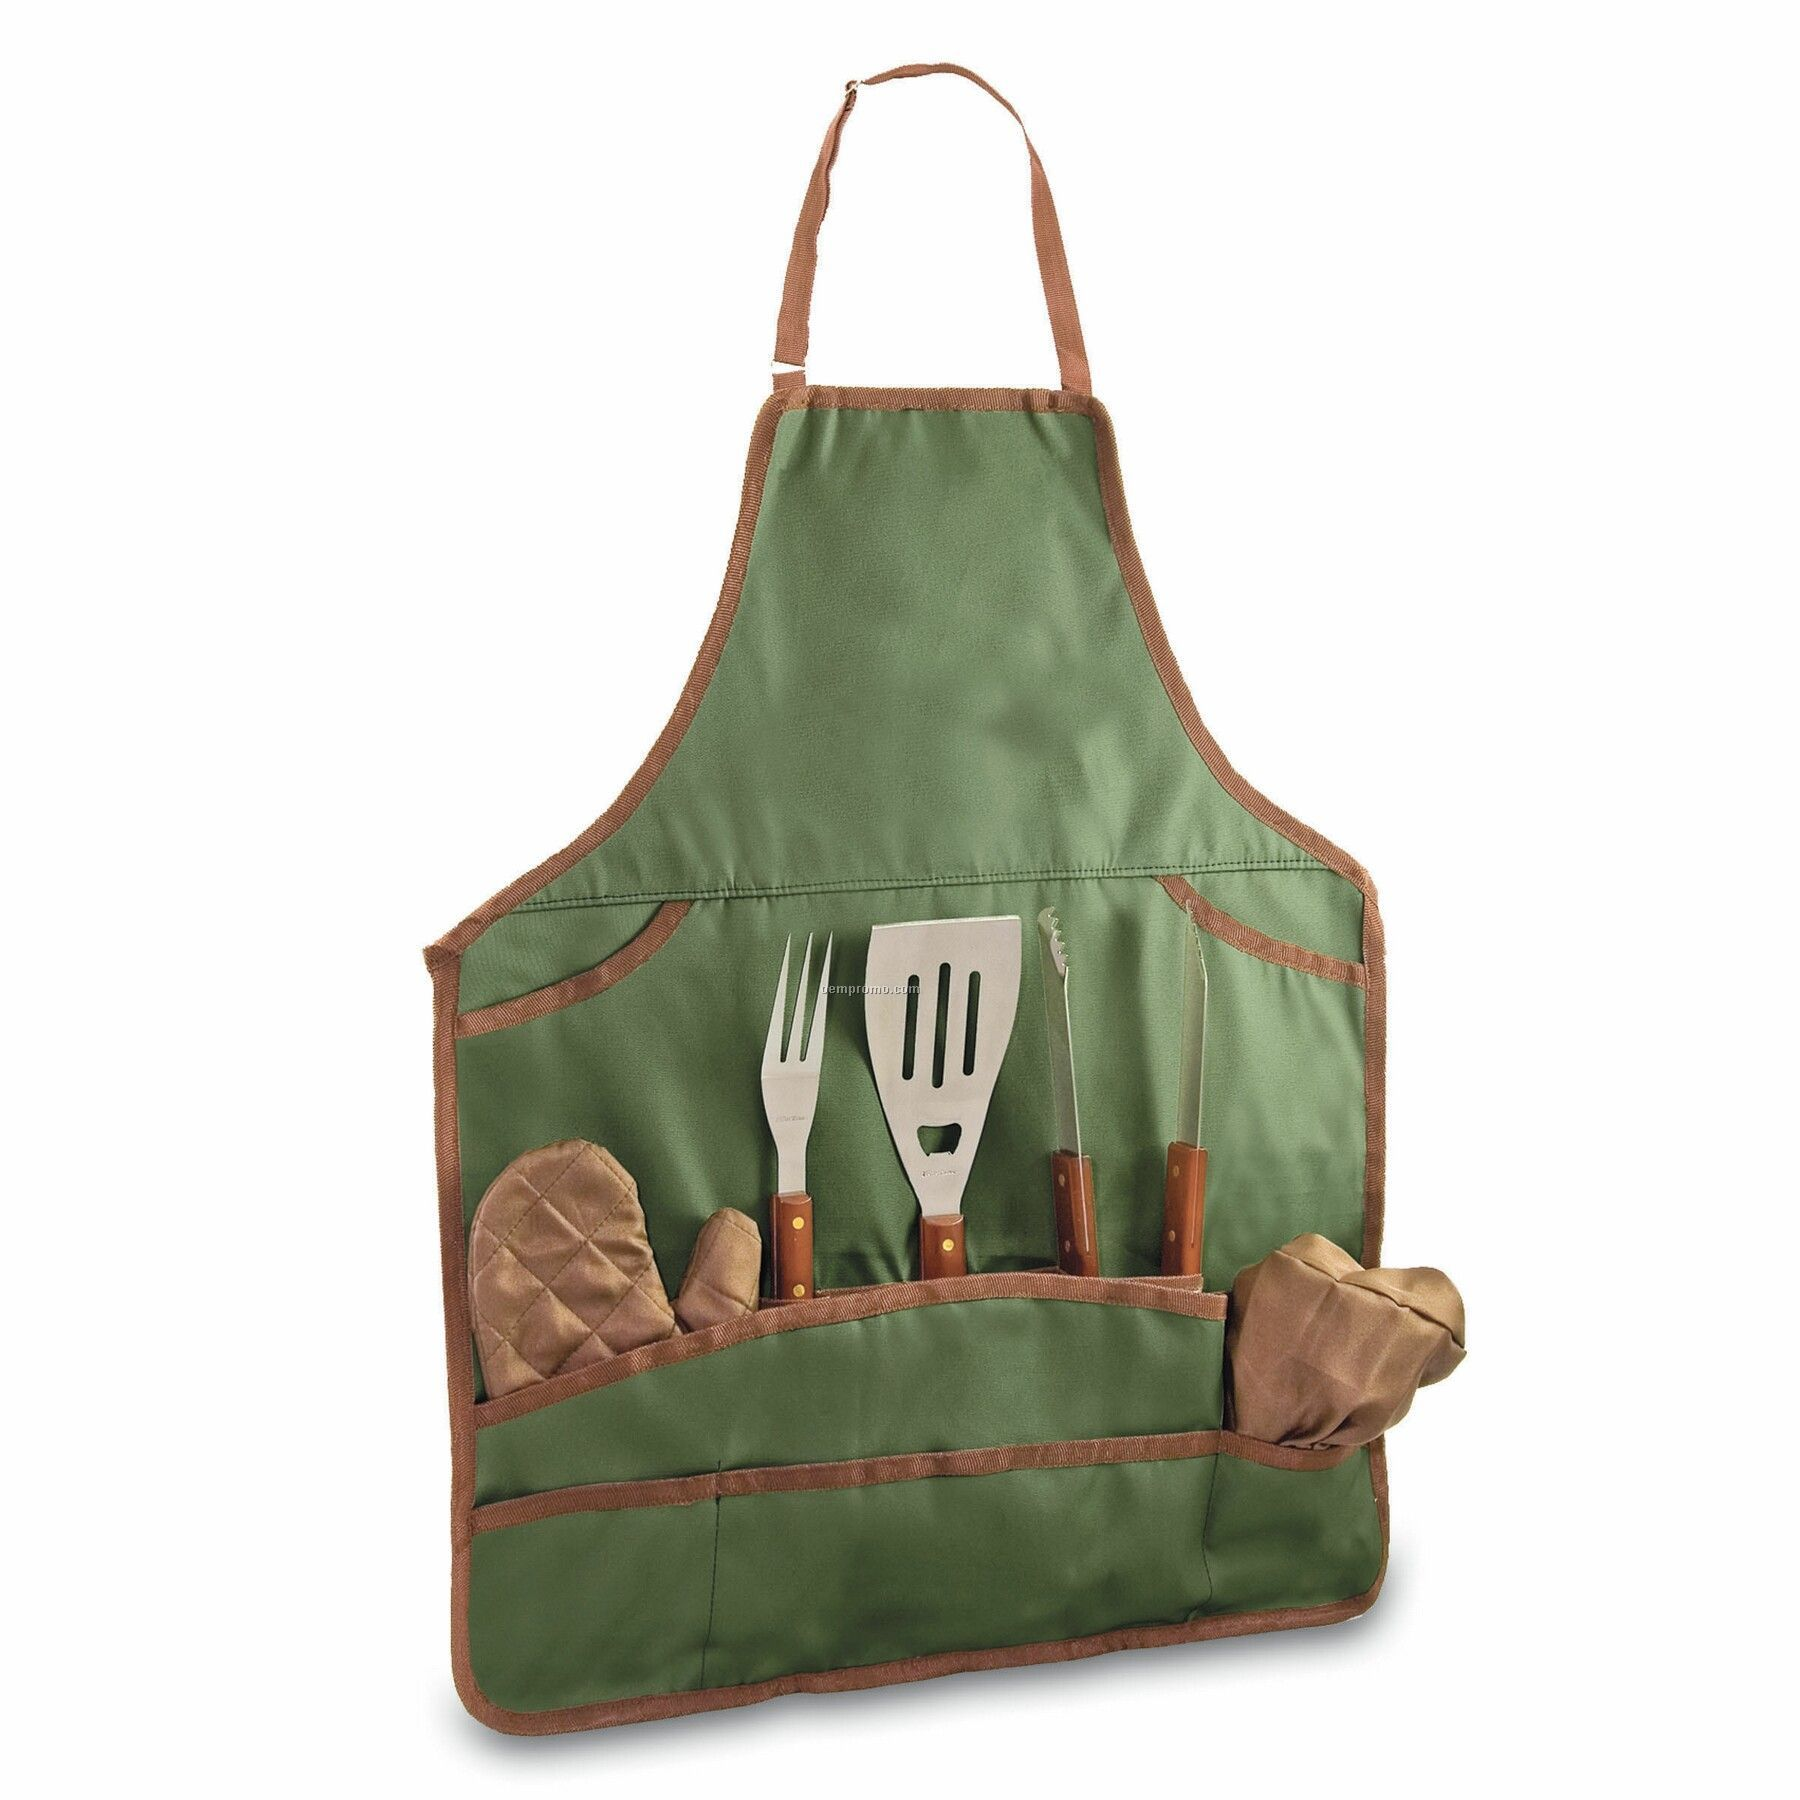 Bbq Apron Tote & Chef Hat W/ 3 Piece Stainless Steel Tool Set